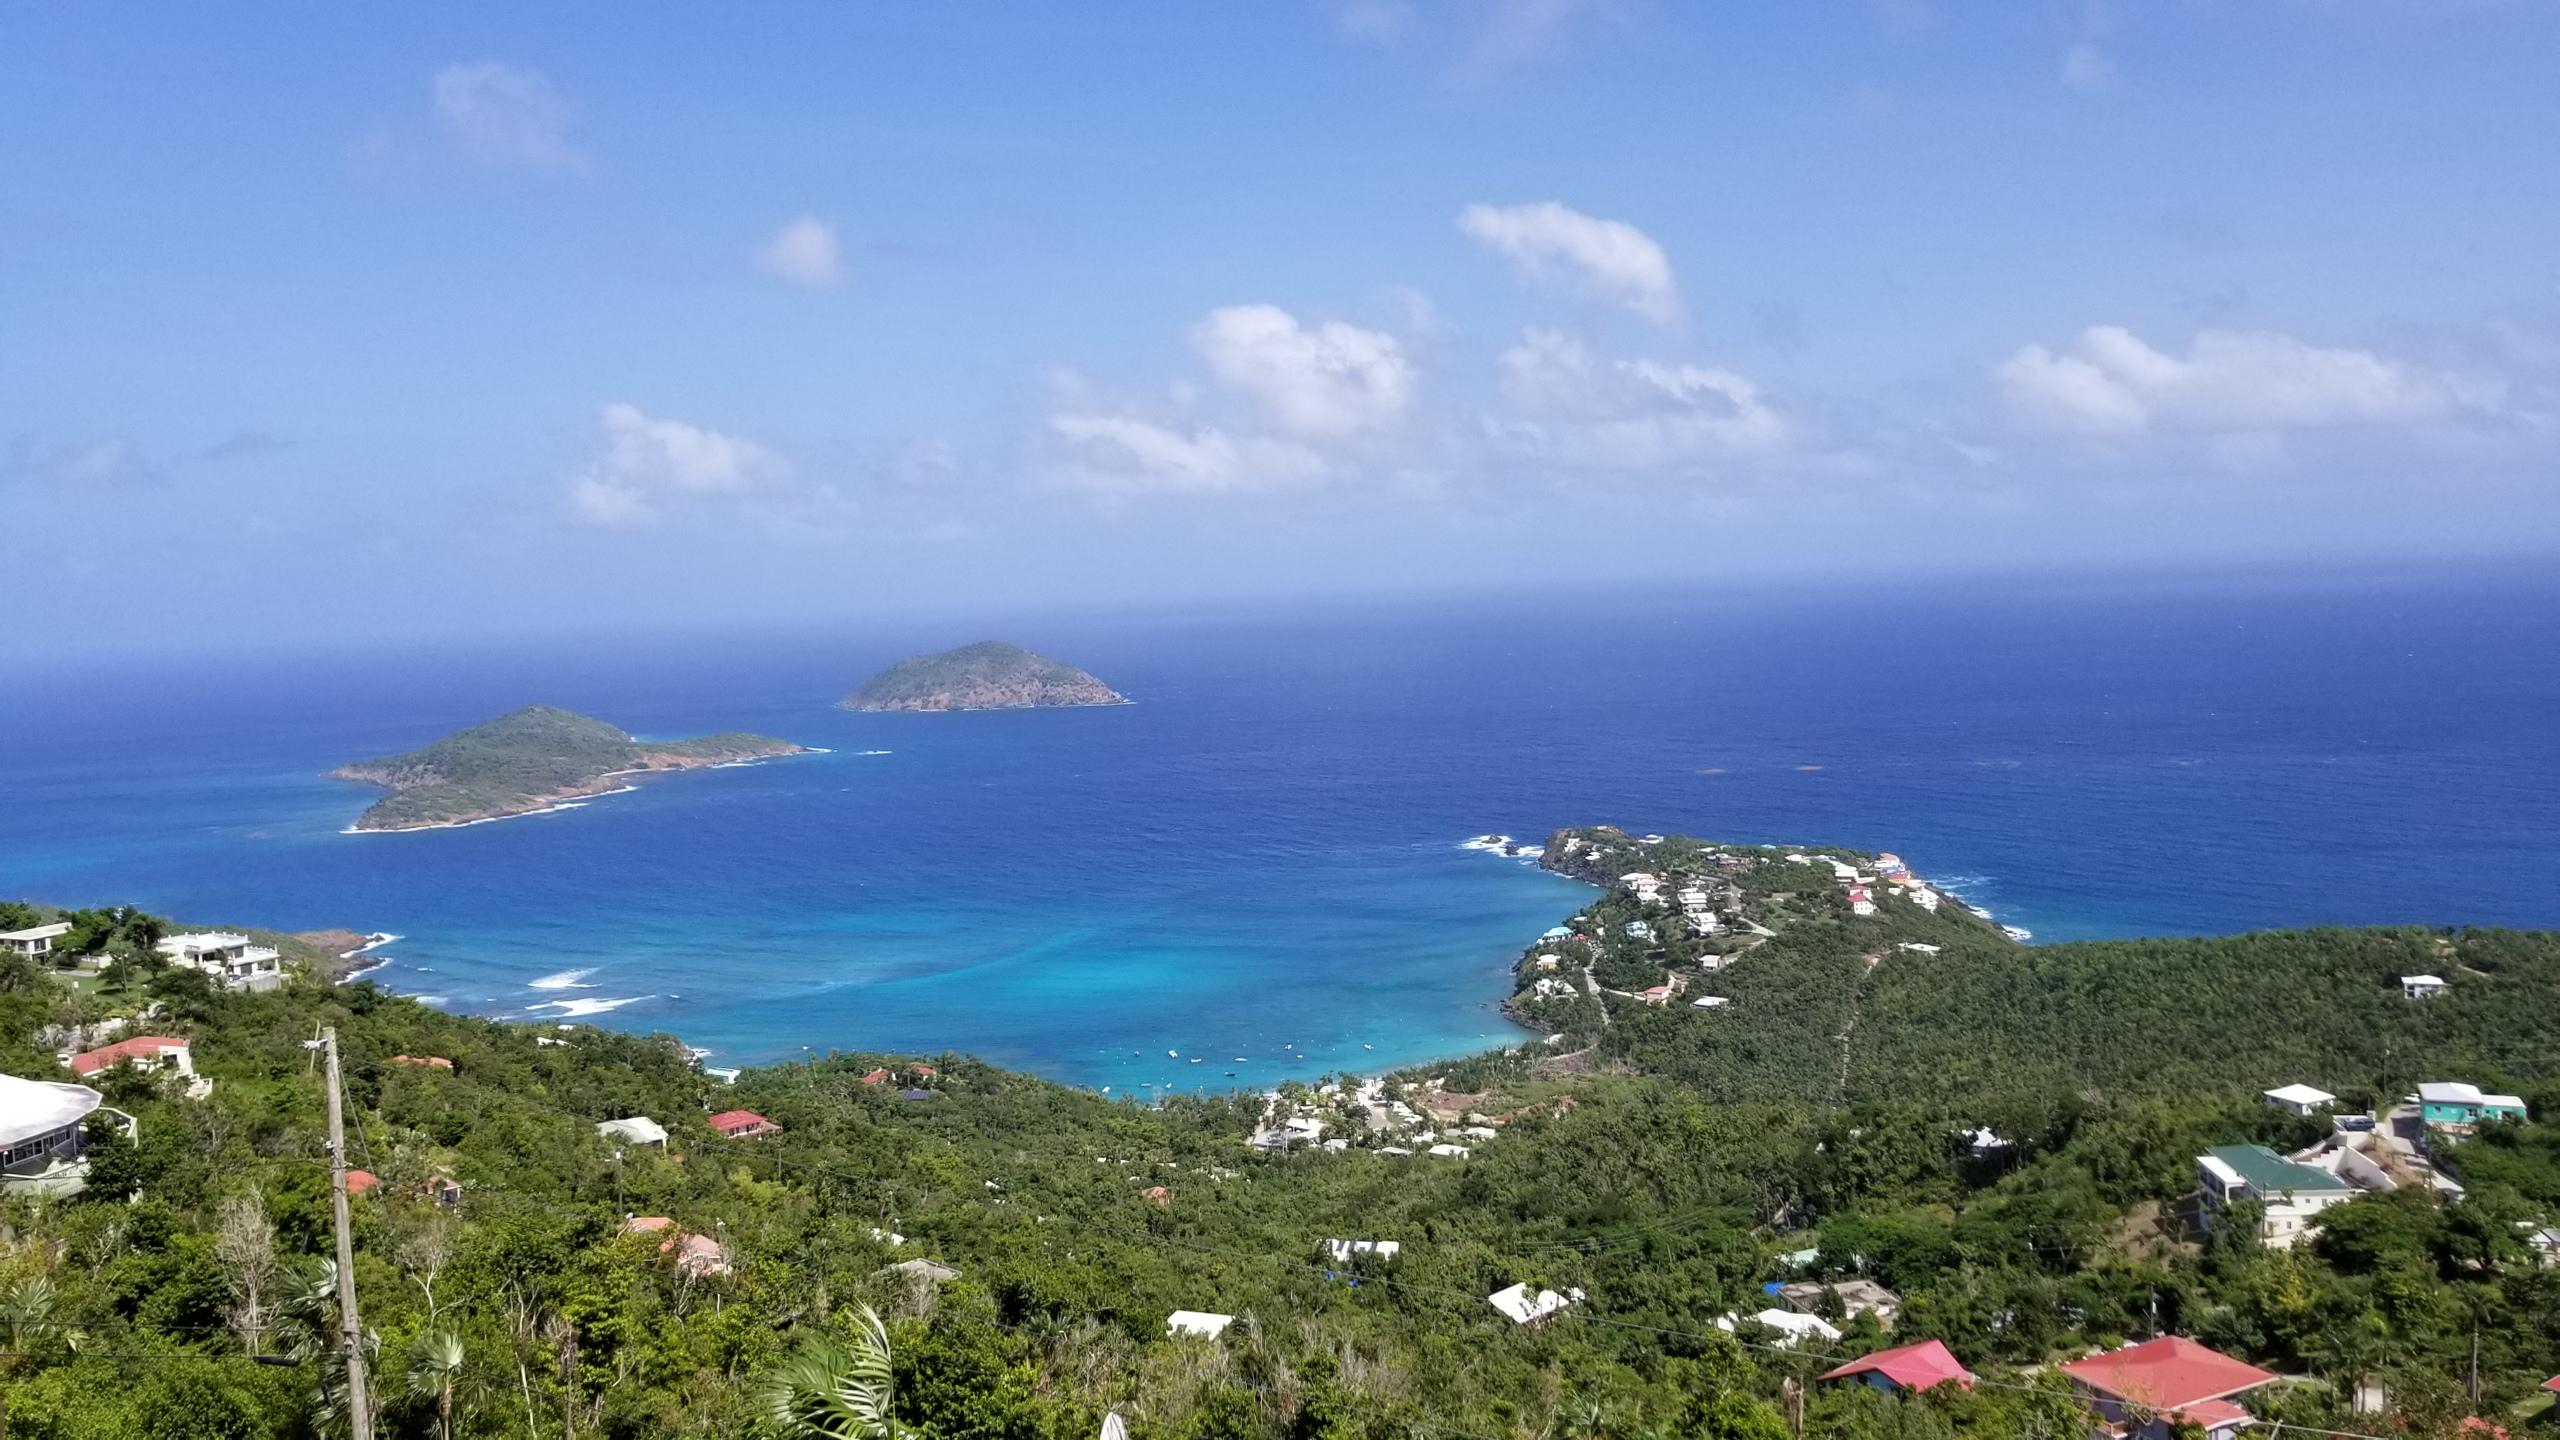 Multi-Family Home for Sale at 7-11 St. Peter LNS 7-11 St. Peter LNS St Thomas, Virgin Islands 00802 United States Virgin Islands